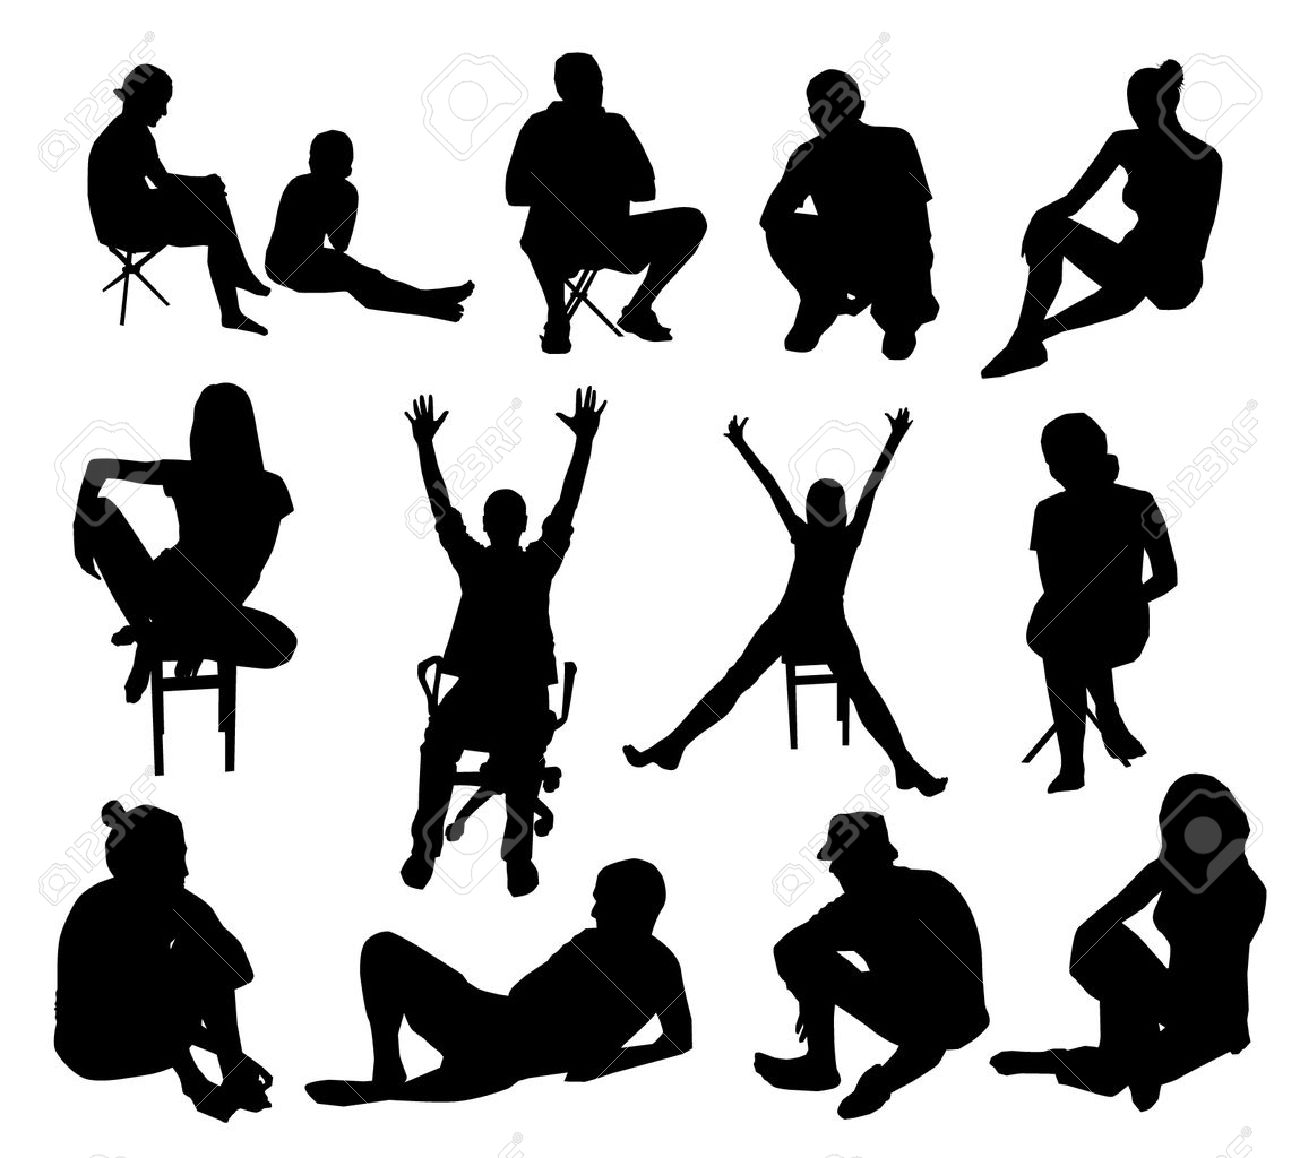 Set of sitting people silhouettes - 20735131